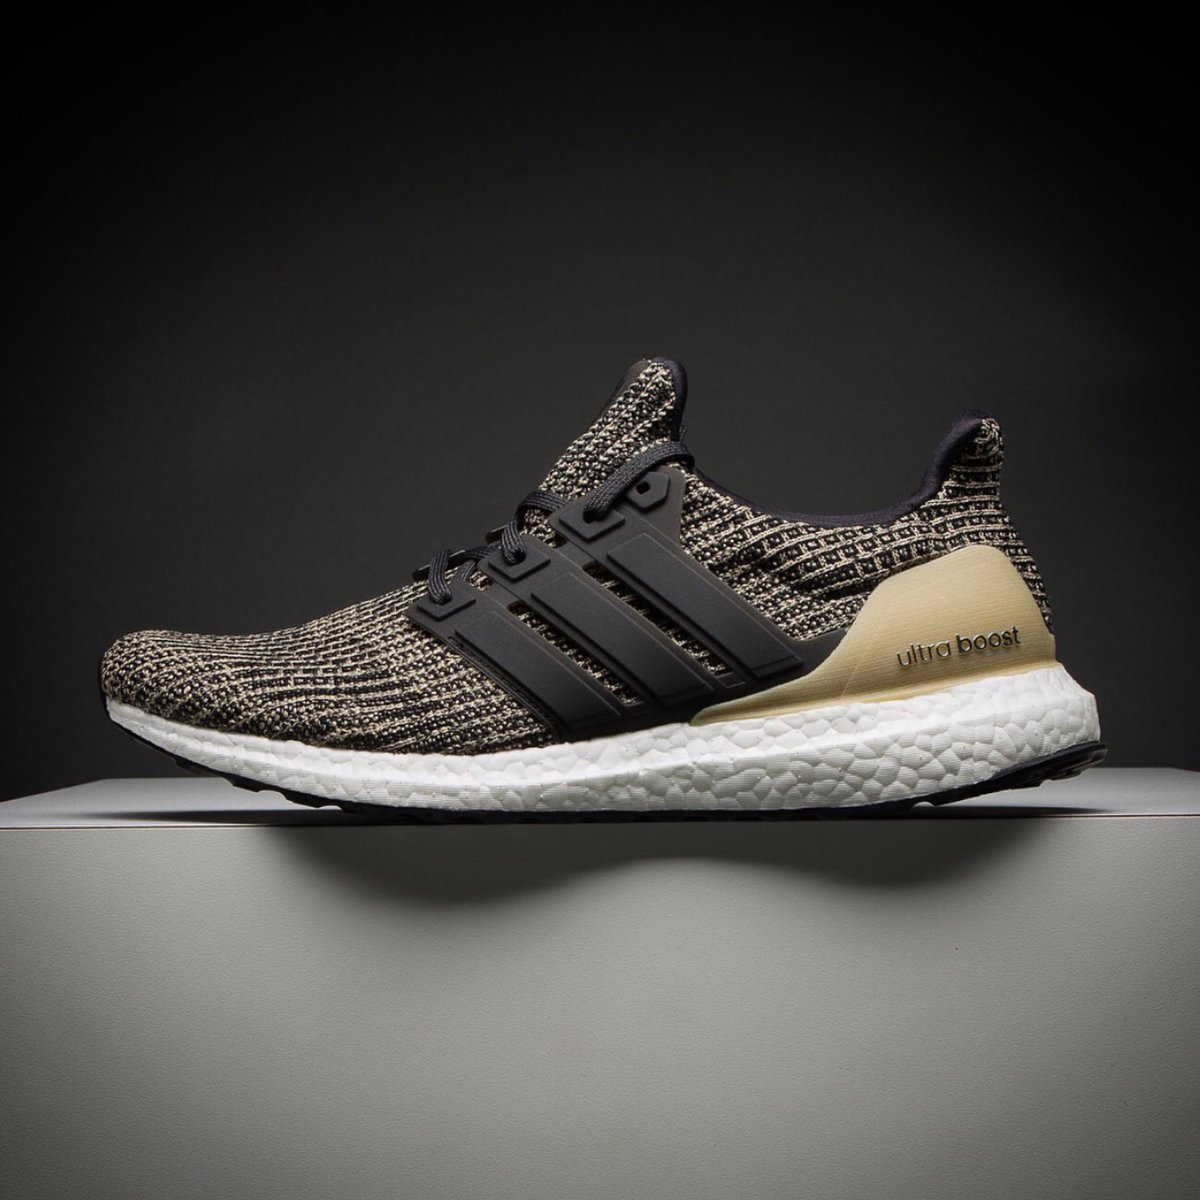 6918ba0f175e8a usa free run rush nike 45ec3 b9363  official store champs sports on twitter  4.0s on deck adidasrunning ultra boost 4.0 3 new